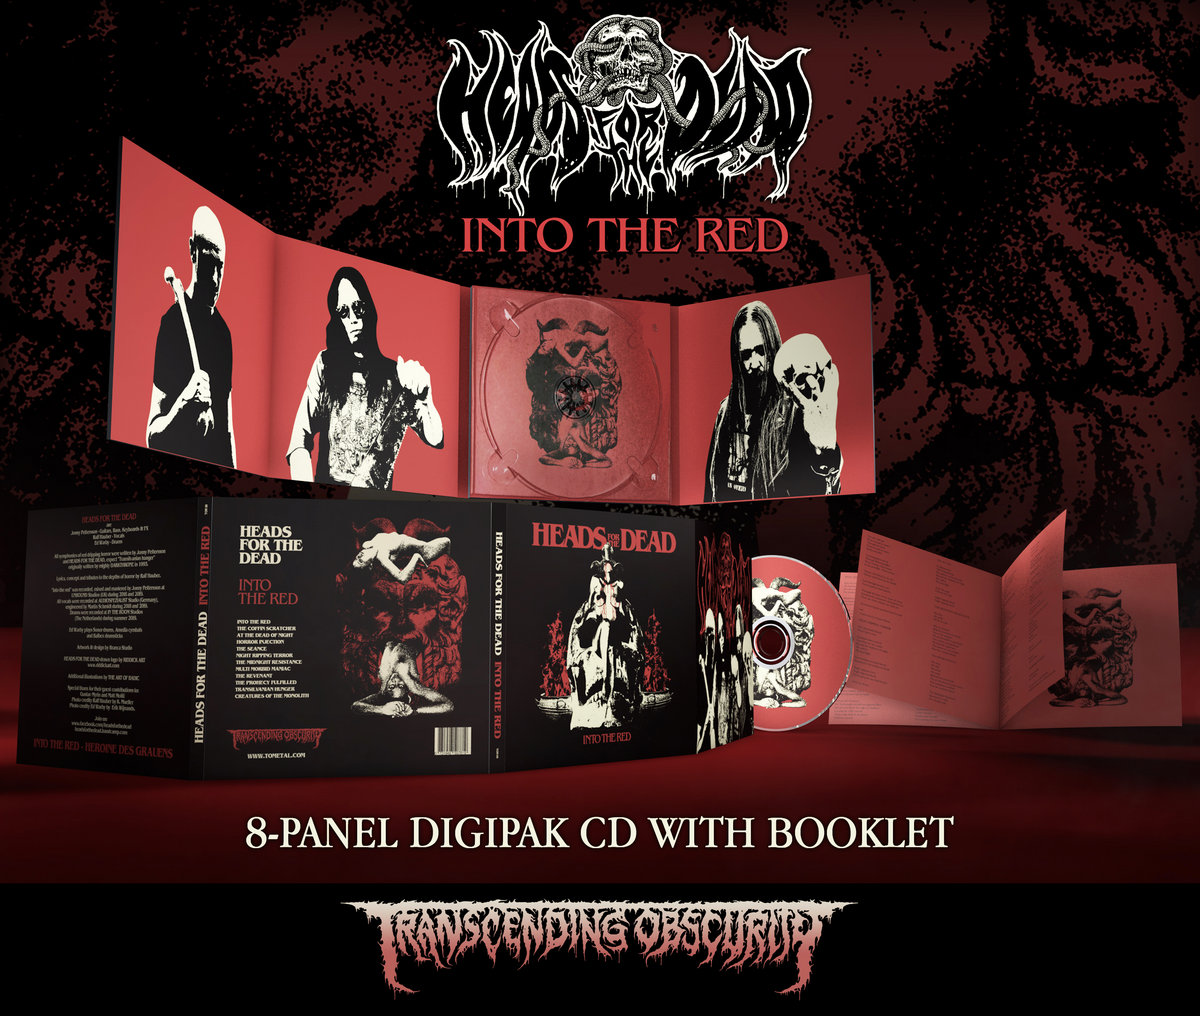 Heads For The Dead - Into The Red Digipak CD with 8-Panel Booklet